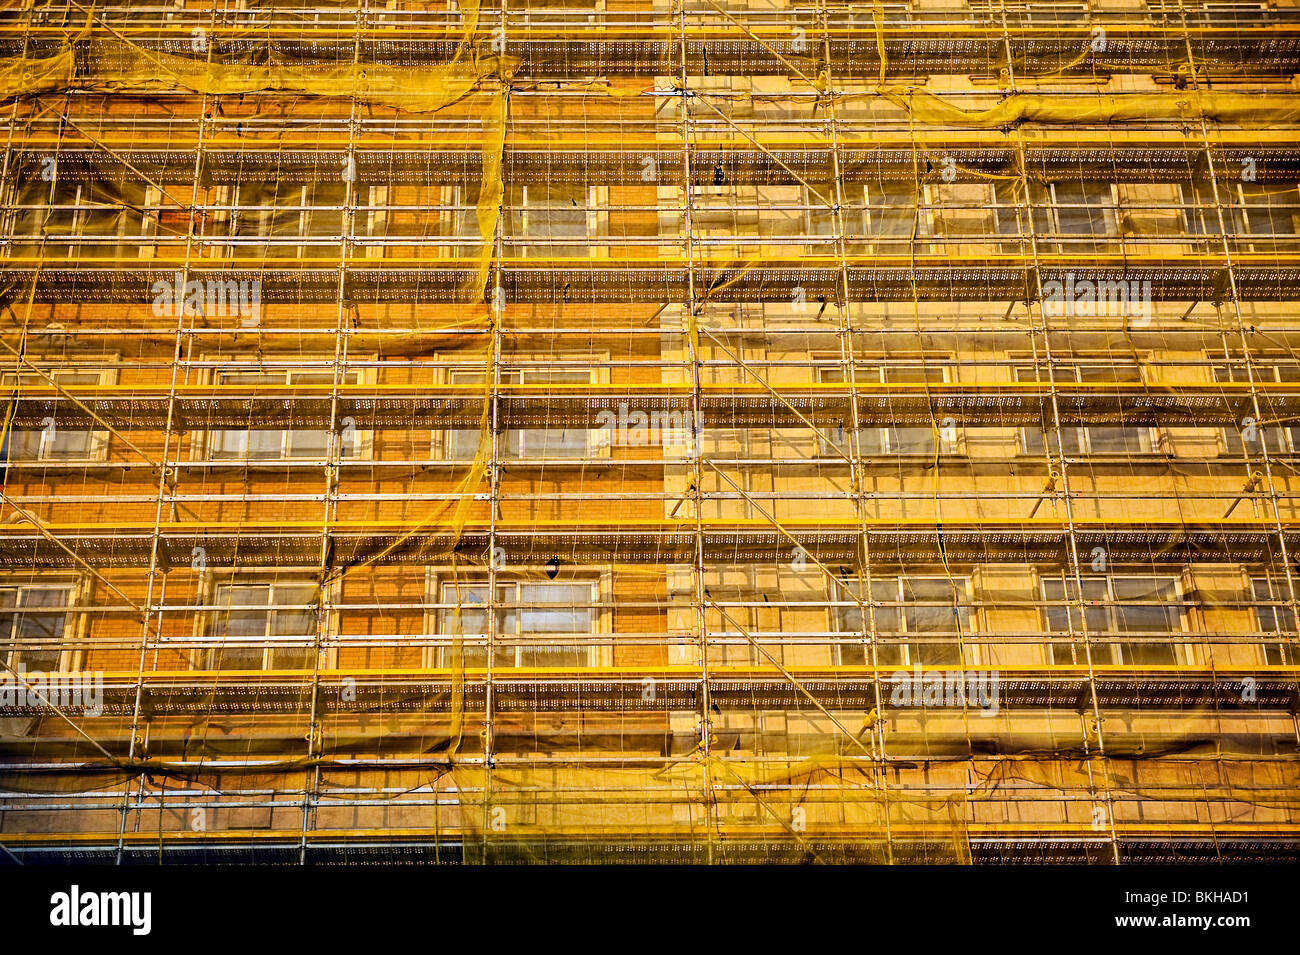 Buildings undergoing restoration covered in scaffolding and mesh fabric, Madrid, Spain - Stock Image